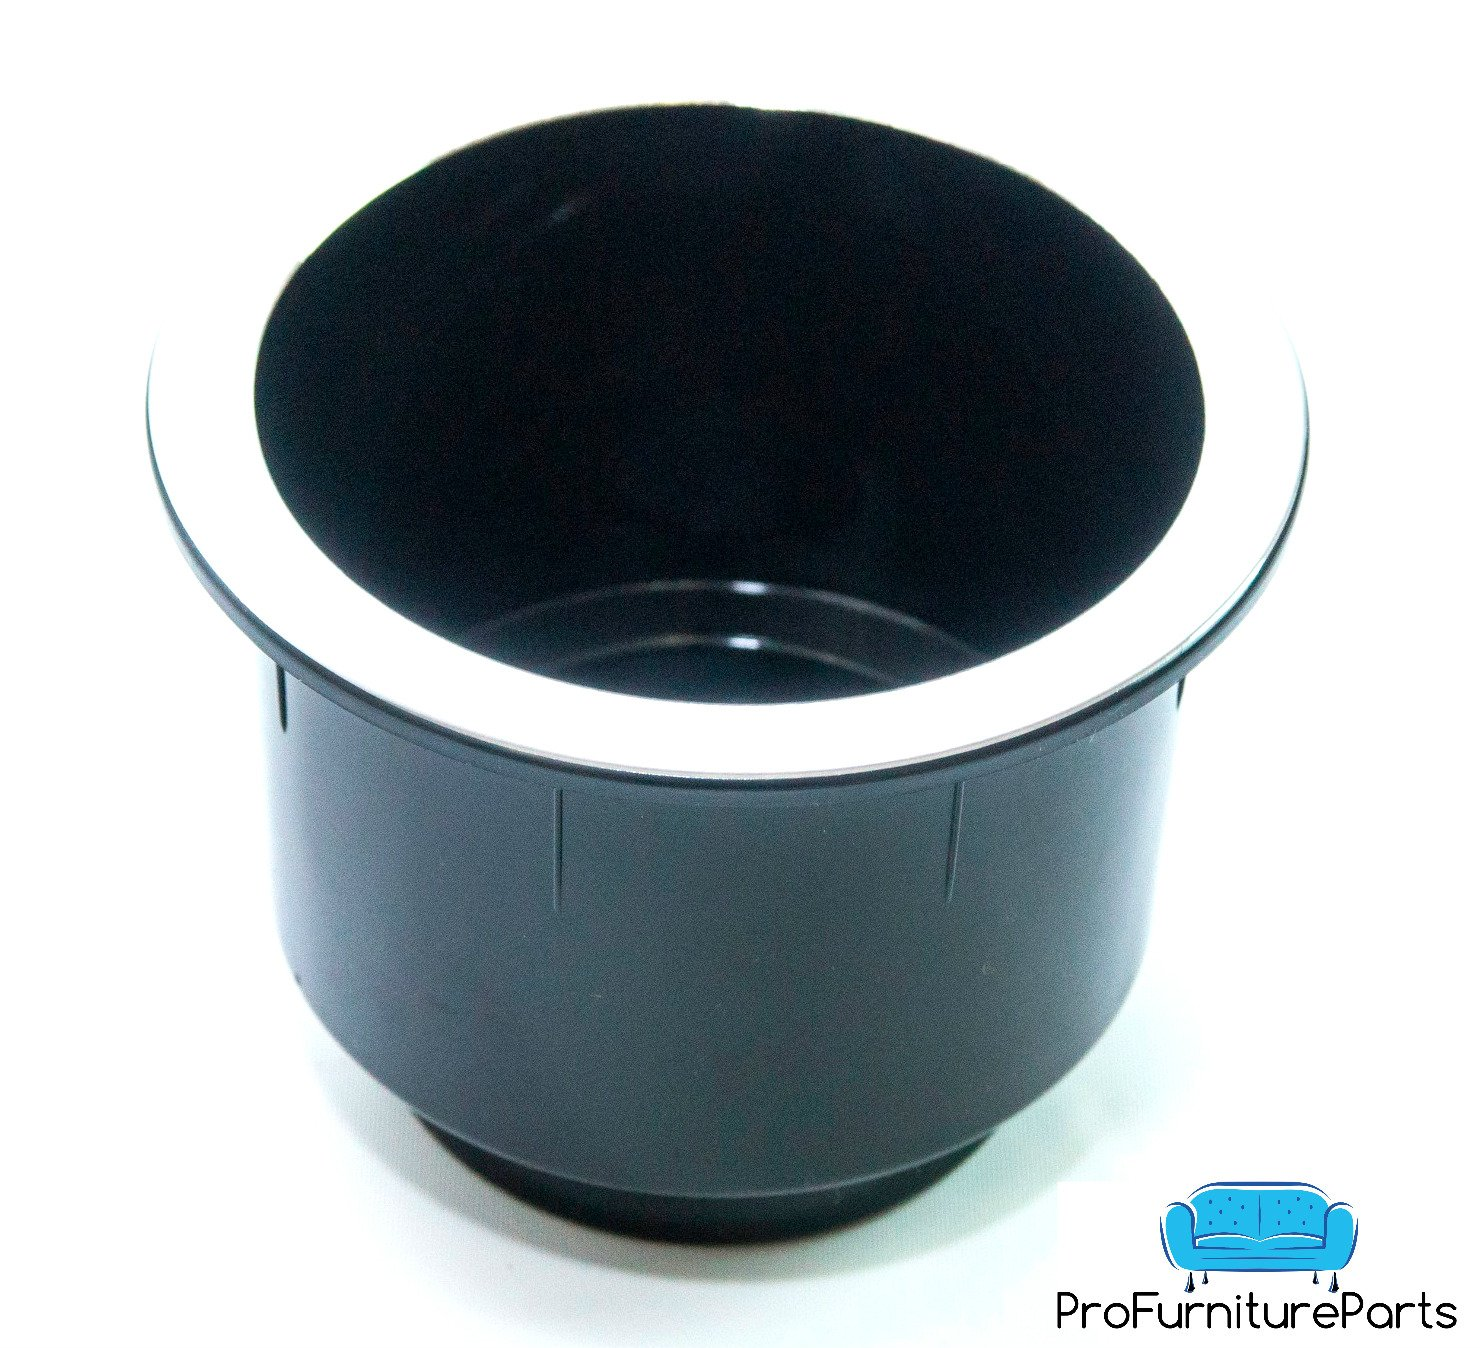 ProFurnitureParts Black Plastic Cup Holder W//Chrome Rim for Sofa Recliner Boat RV Patio Poker Table Car Truck or Anything! 1